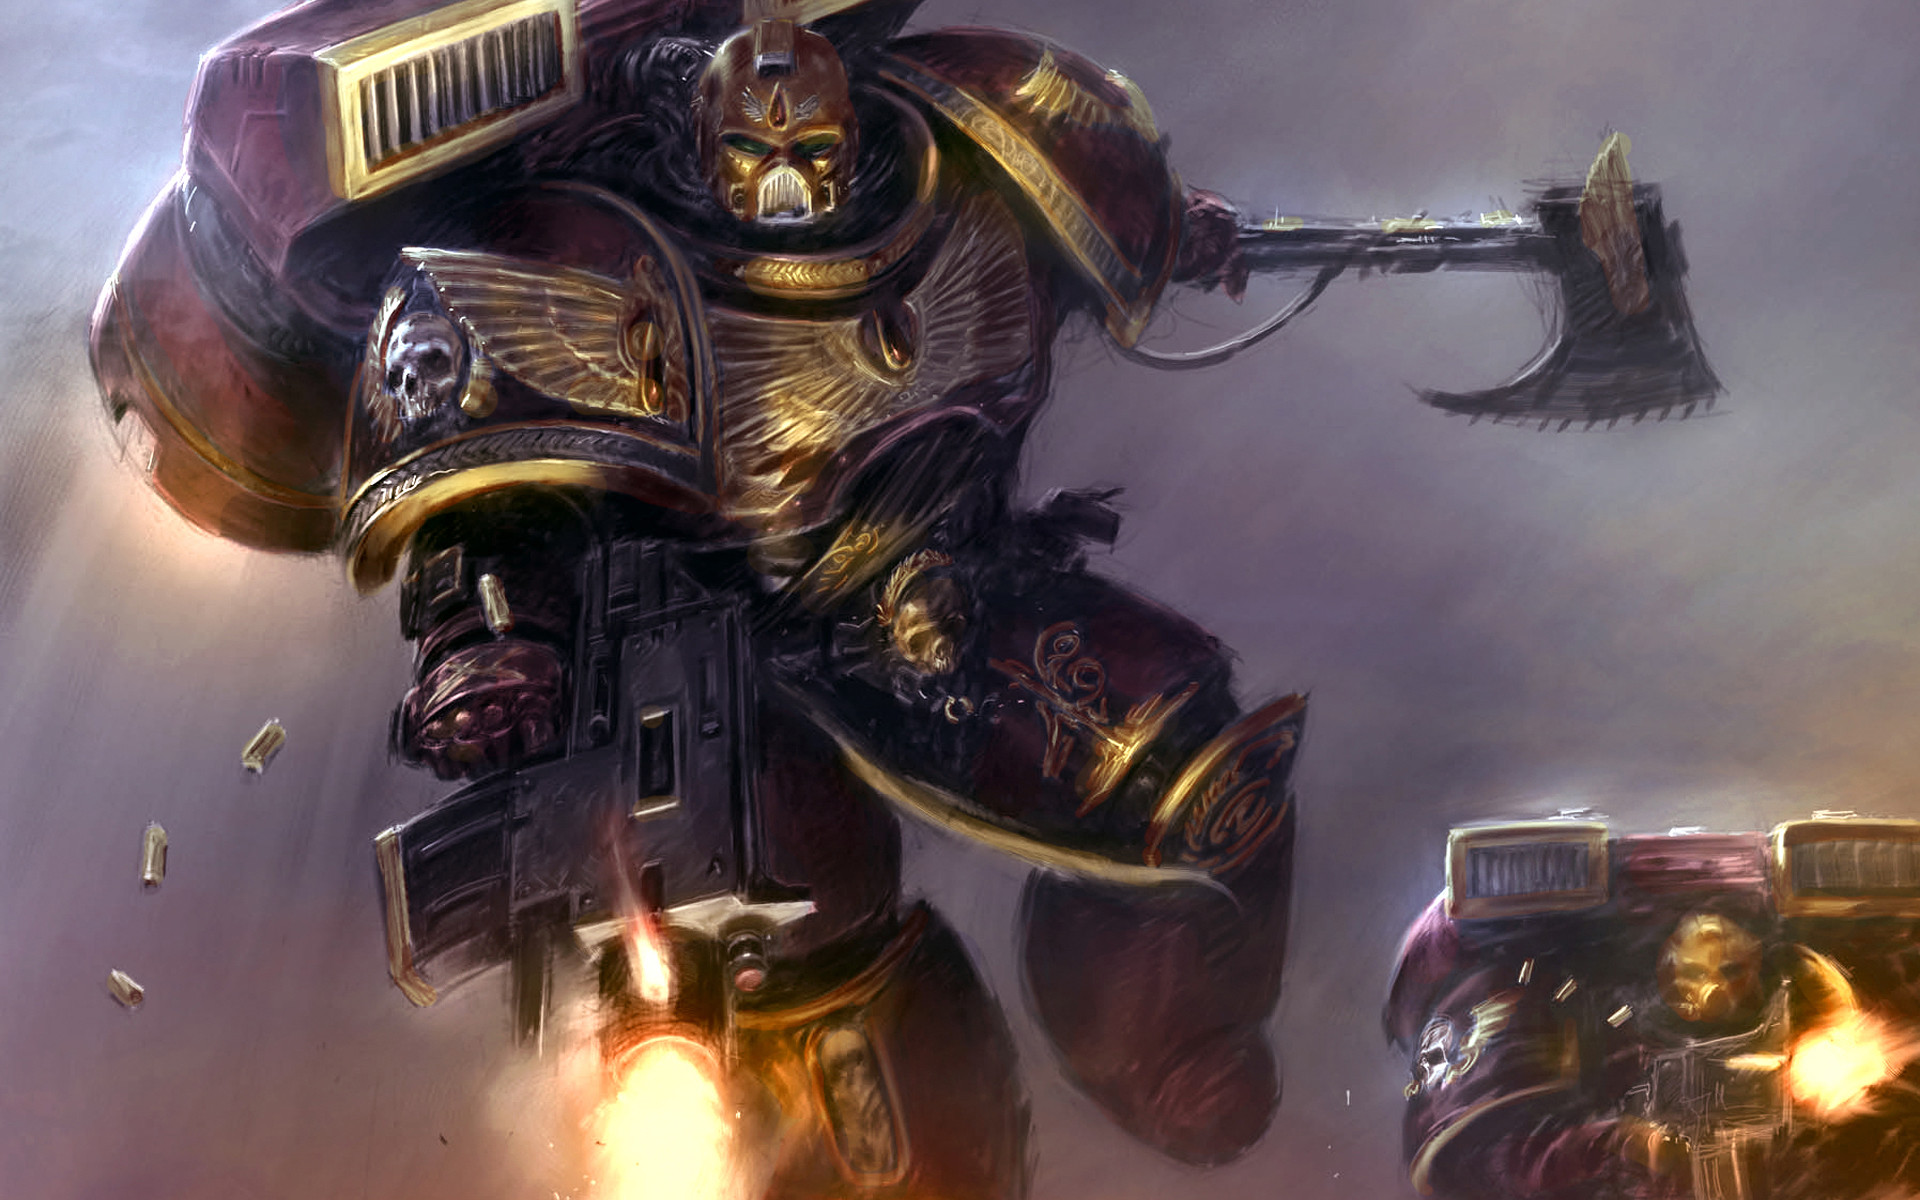 000 Blood Angels Bolter Science Fiction Space Marines Video Games Warhammer  40 40k